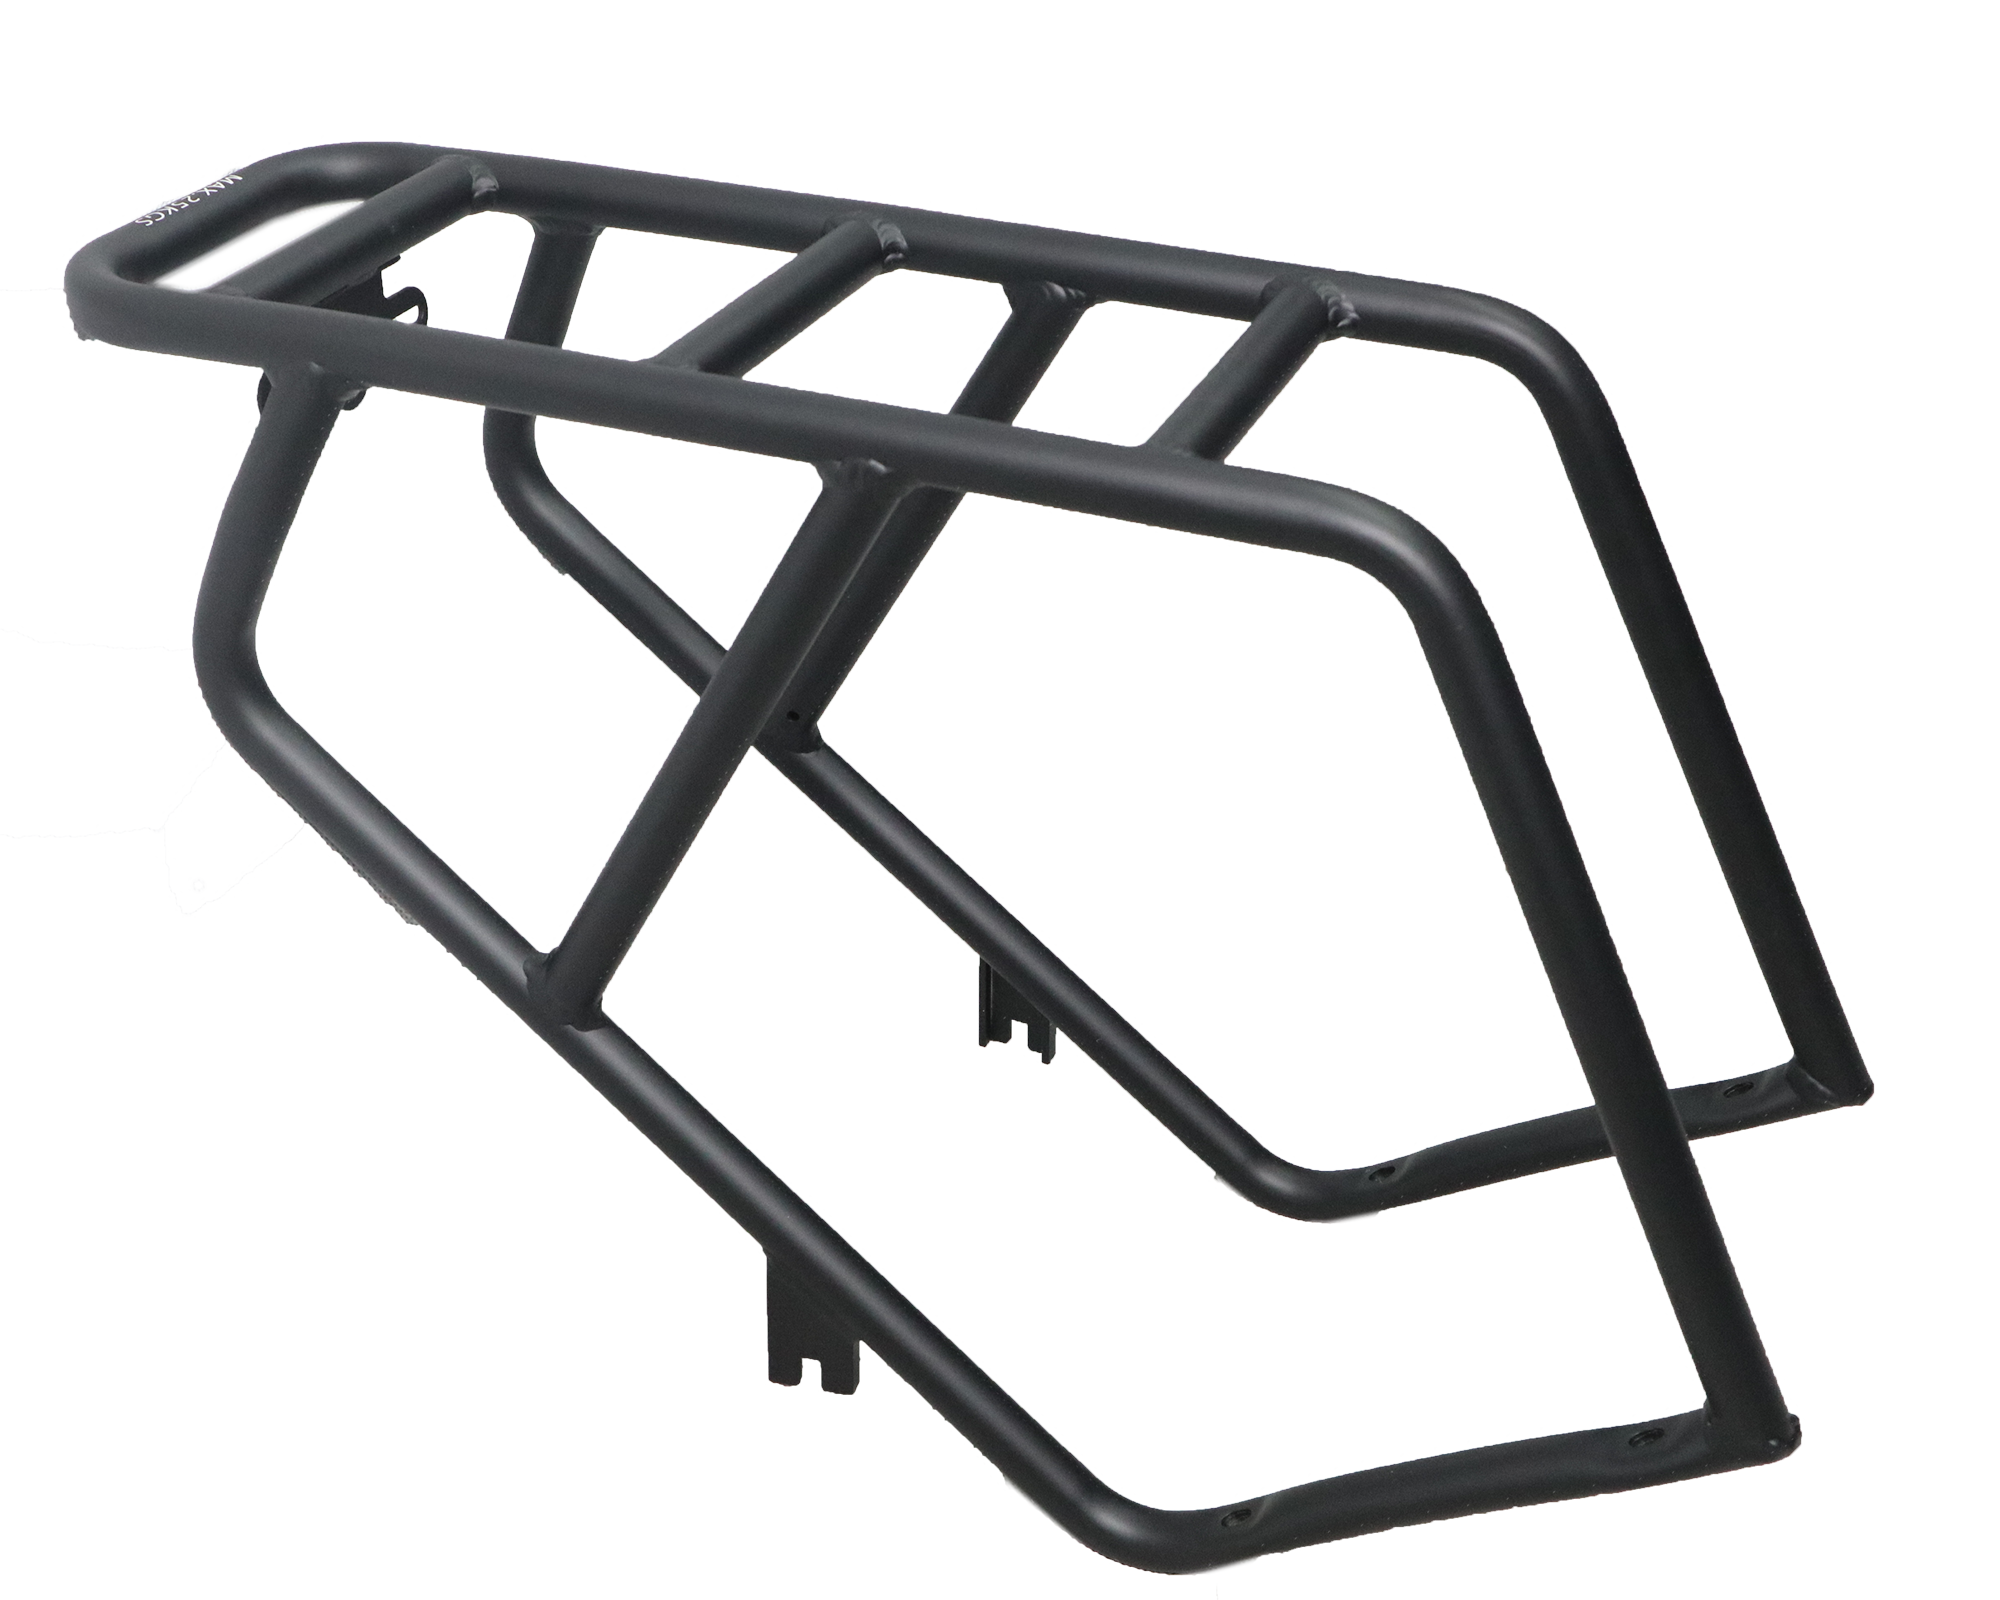 Rear Rack for Cheetah - In stock